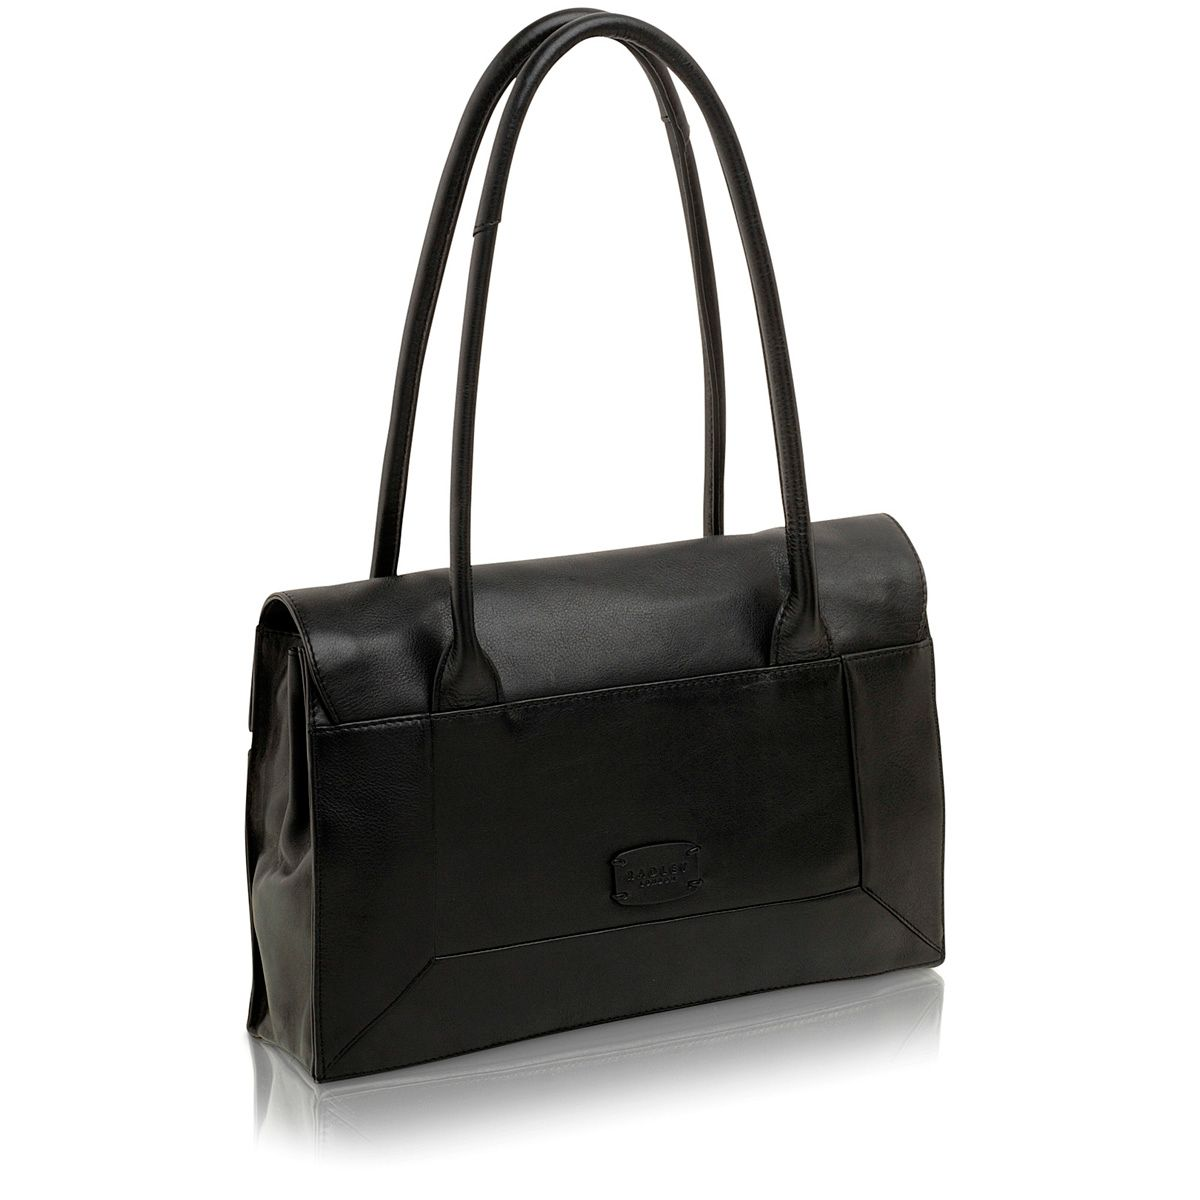 Border black medium flapover leather tote bag